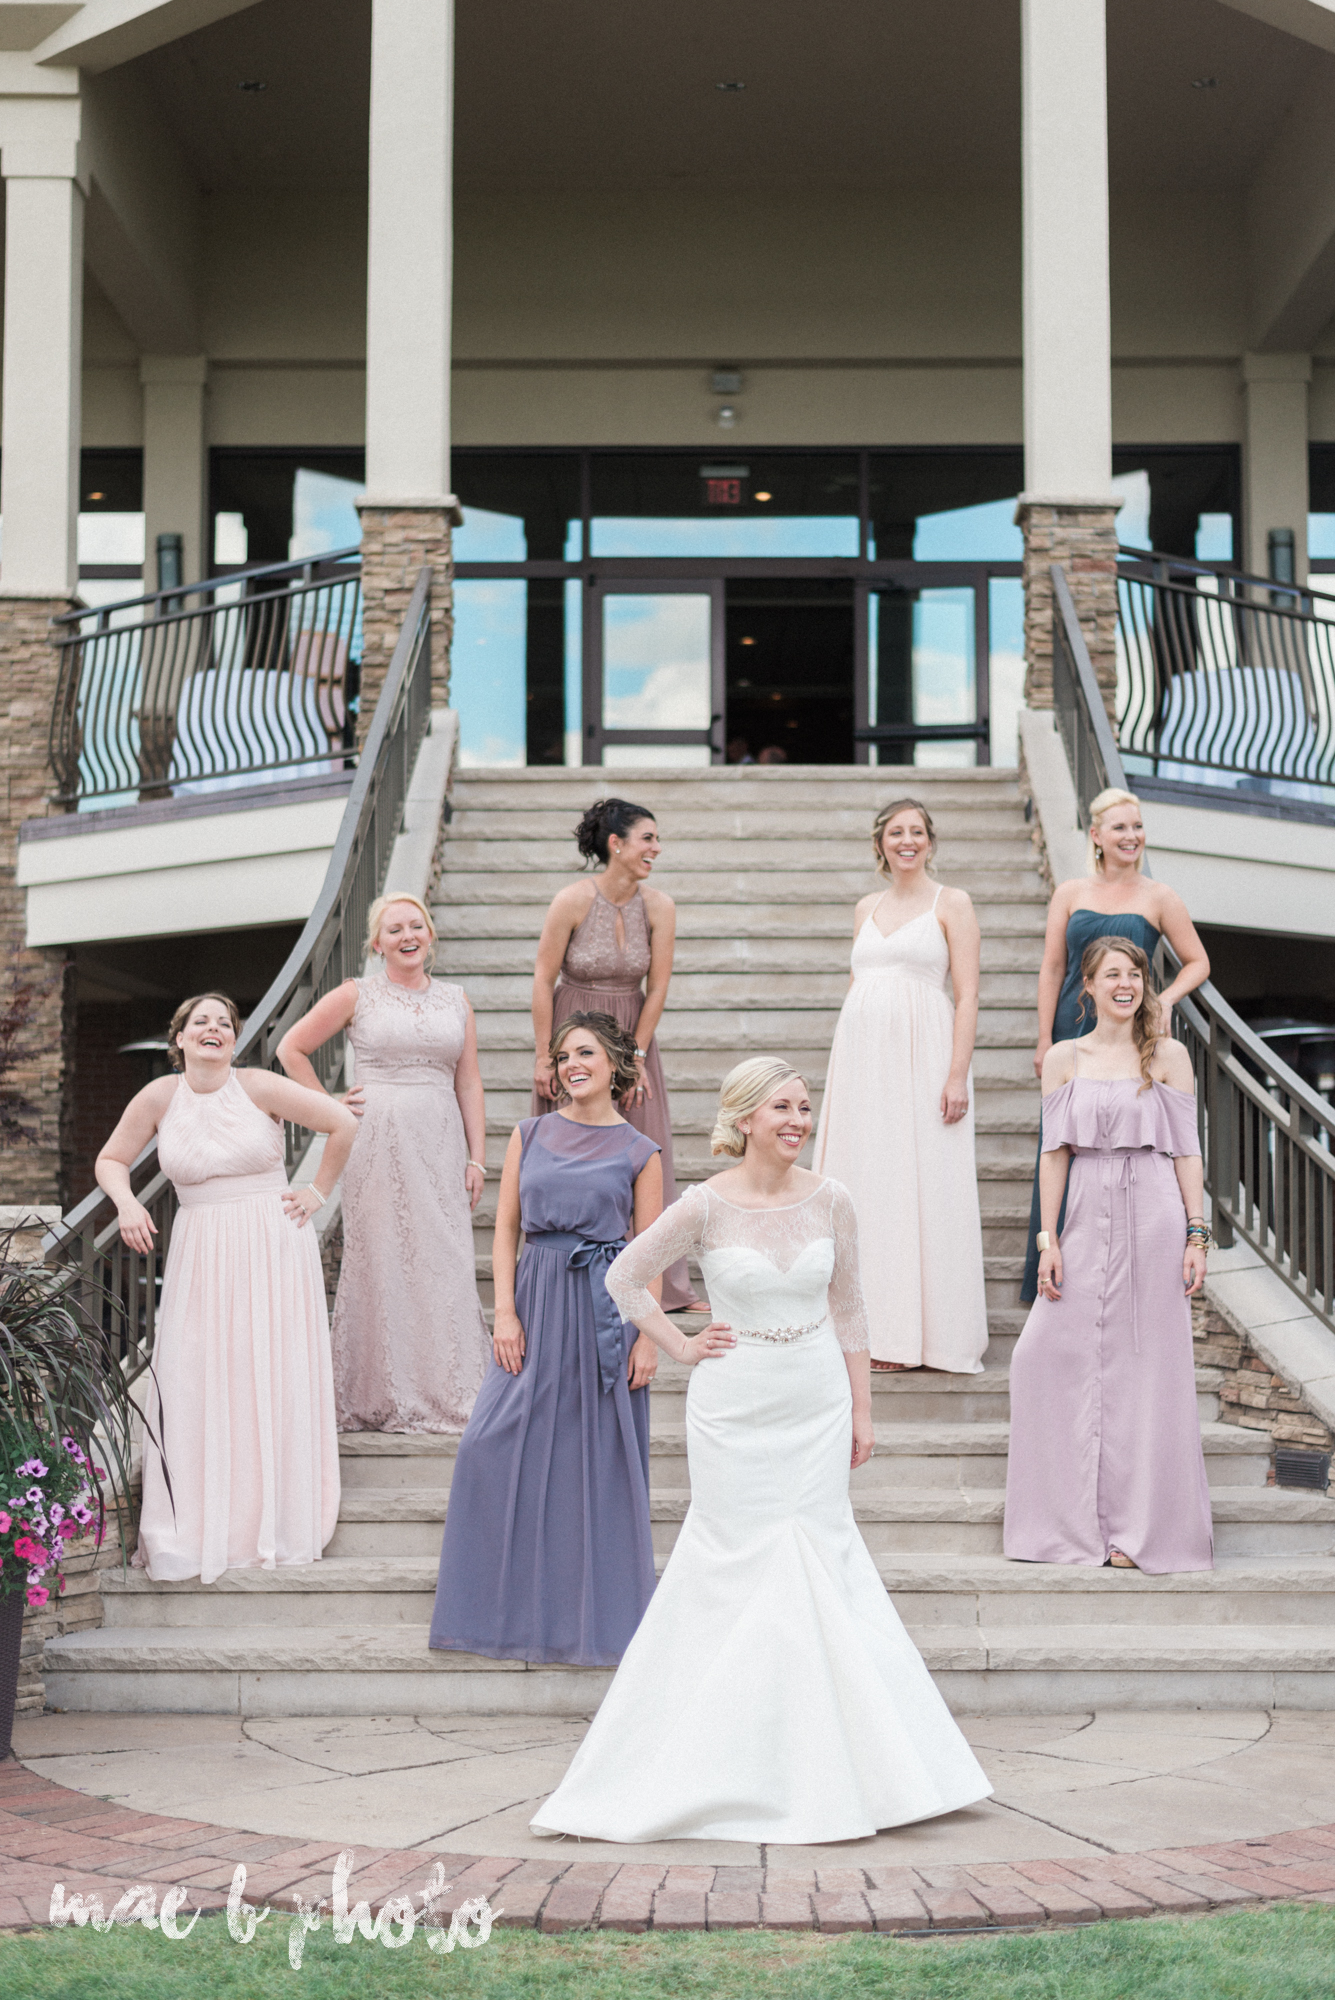 emily and michael's industrial chic summer country club wedding at the lake club in poland ohio photographed by cleveland wedding photographer mae b photo-106.jpg